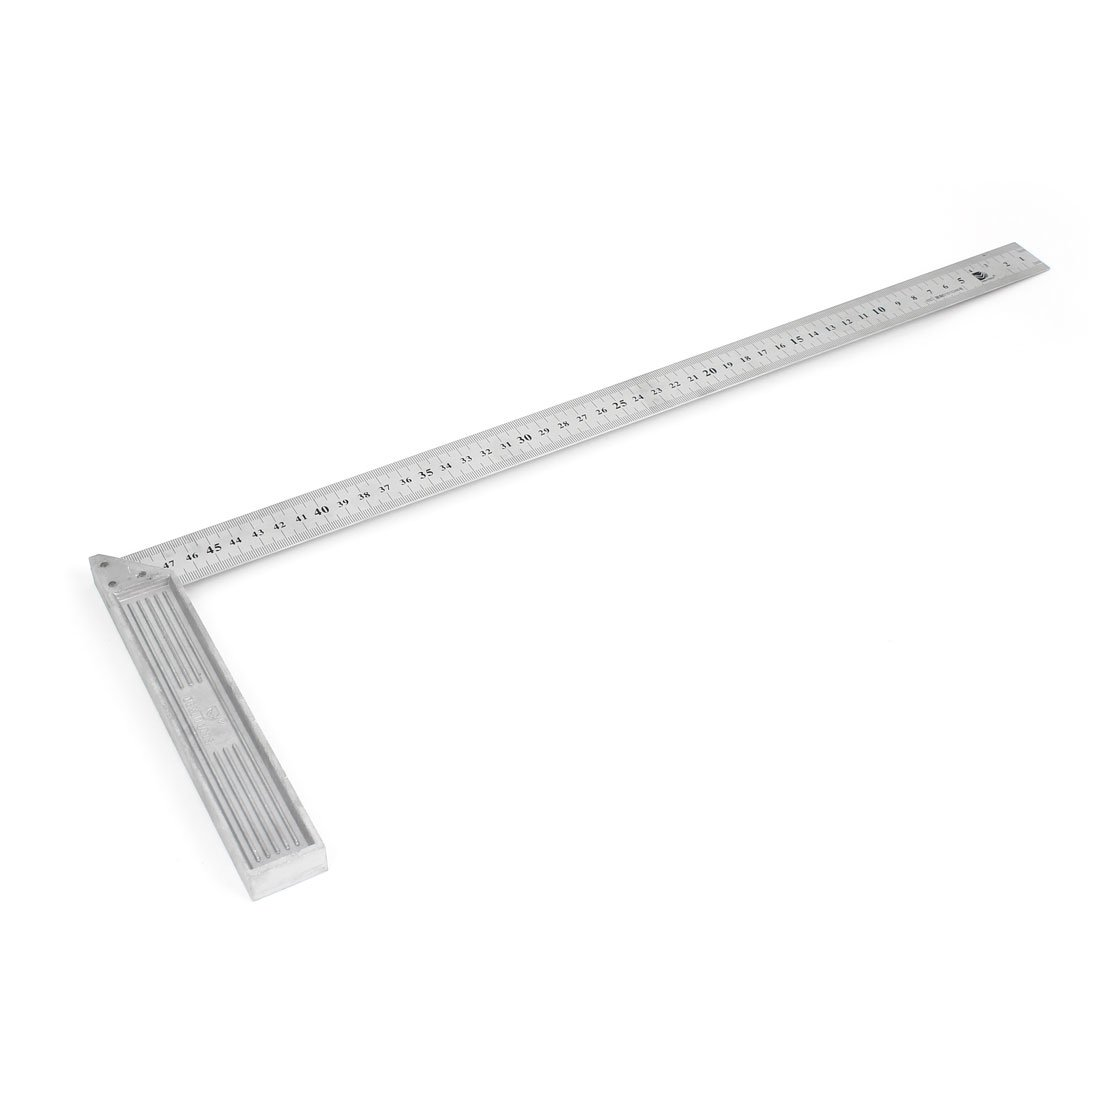 Uxcell Right Angle Double Sides Square Ruler Woodworking Tool, 50cm